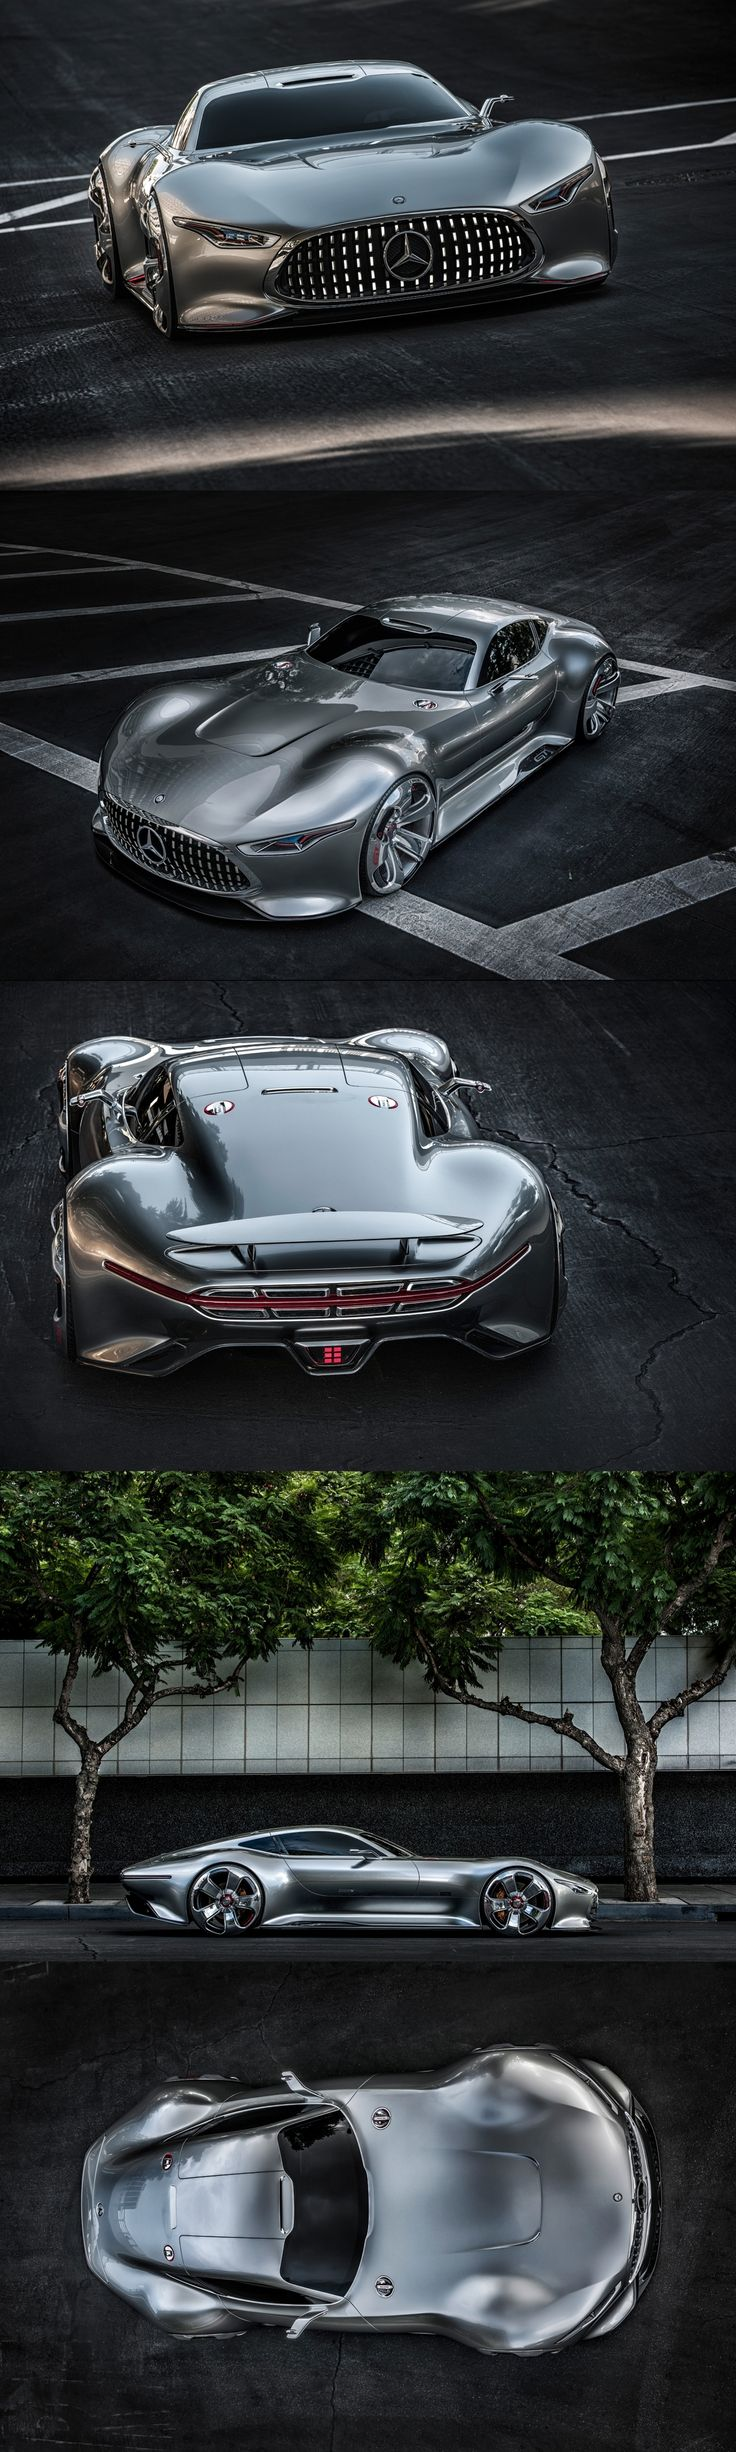 Mercedes AMG Vision Gran Turismo GET 106 ST TIRE & WHEEL GREAT DEALS AT ALL LOCATIONS:  http://www.youtube.com/watch?v=IqoXUcN2_nc Come in to any of 106St Tire & Wheel 5 Queens location  Wheel Alignment services 45$ most cars, 65$ most cars Napa Front Brake Pad service, Wheel Repair service starting at 35$, 25$ Oil Change including a FREE tire rotation 718-446-6769